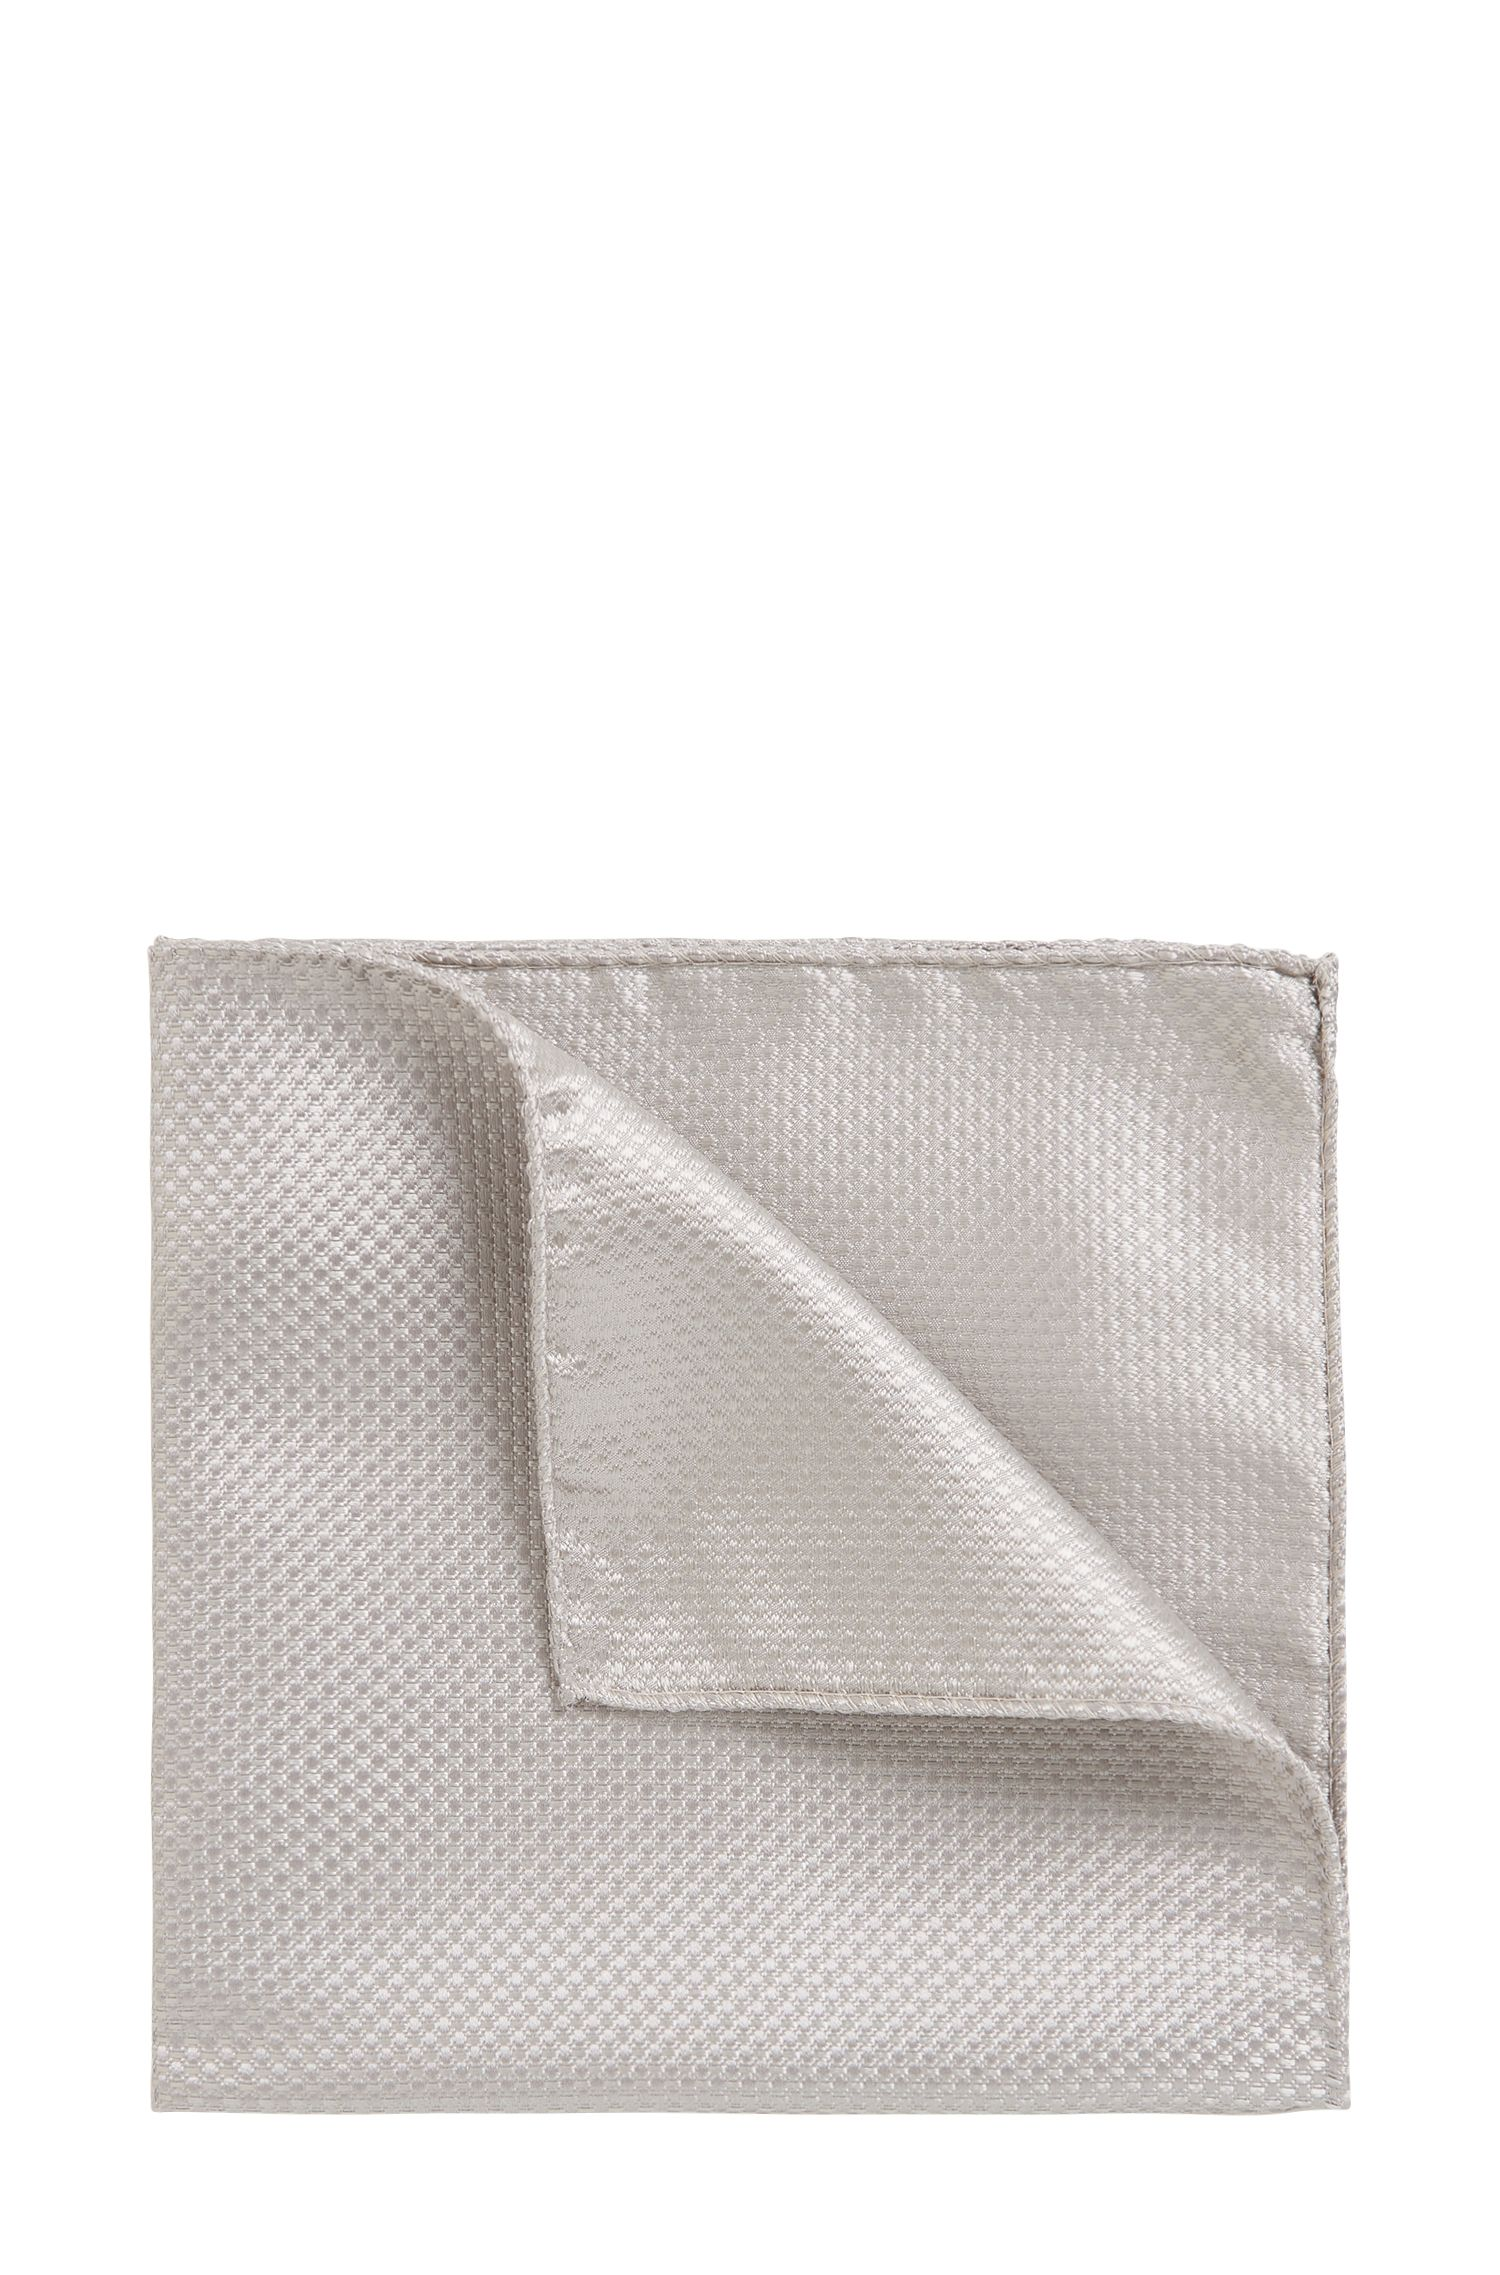 Italian-made pocket square in lustrous silk jacquard